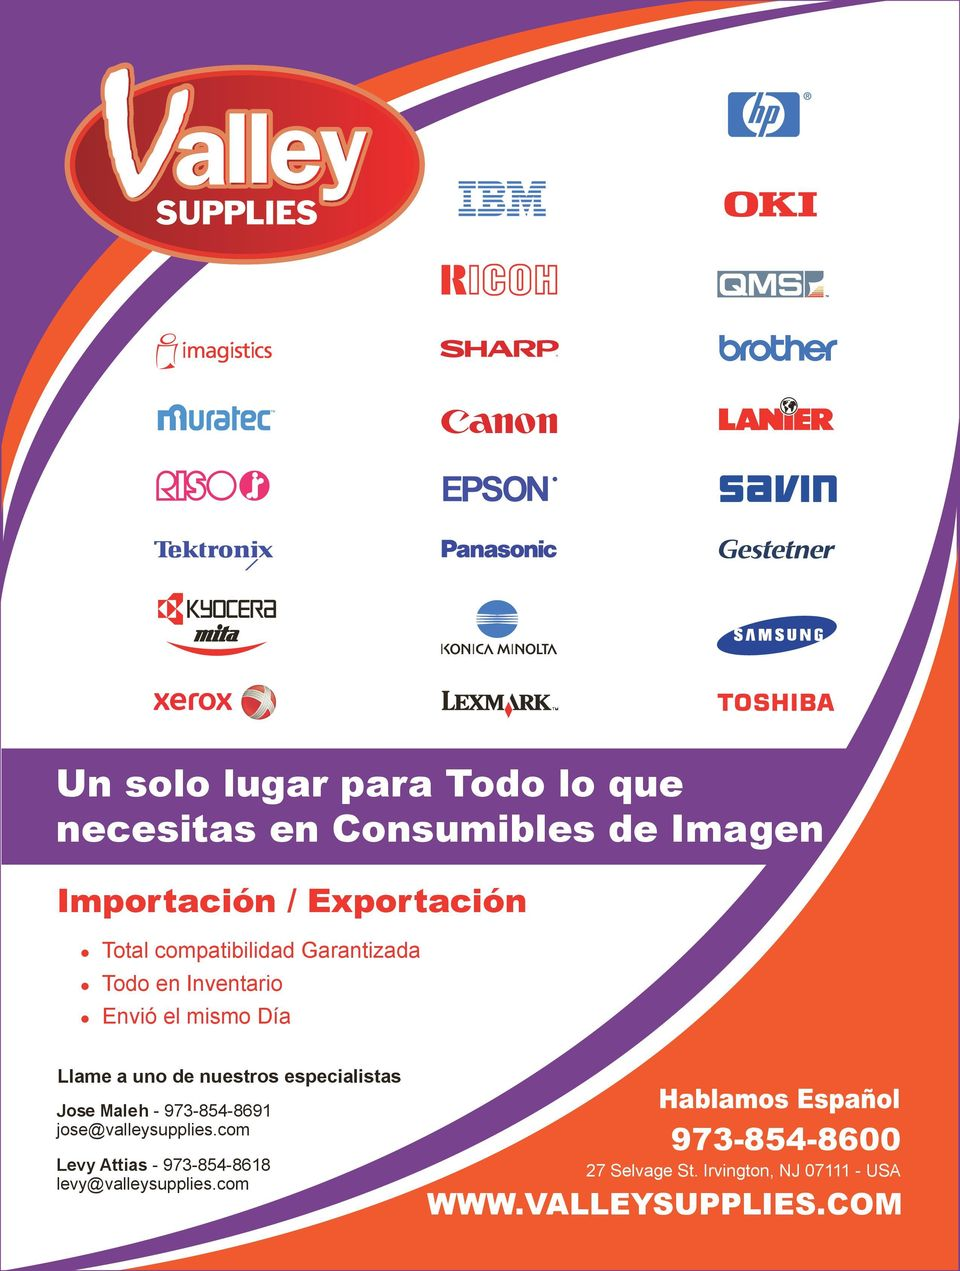 especialistas Jose Maleh - 973-854-8691 jose@valleysupplies.